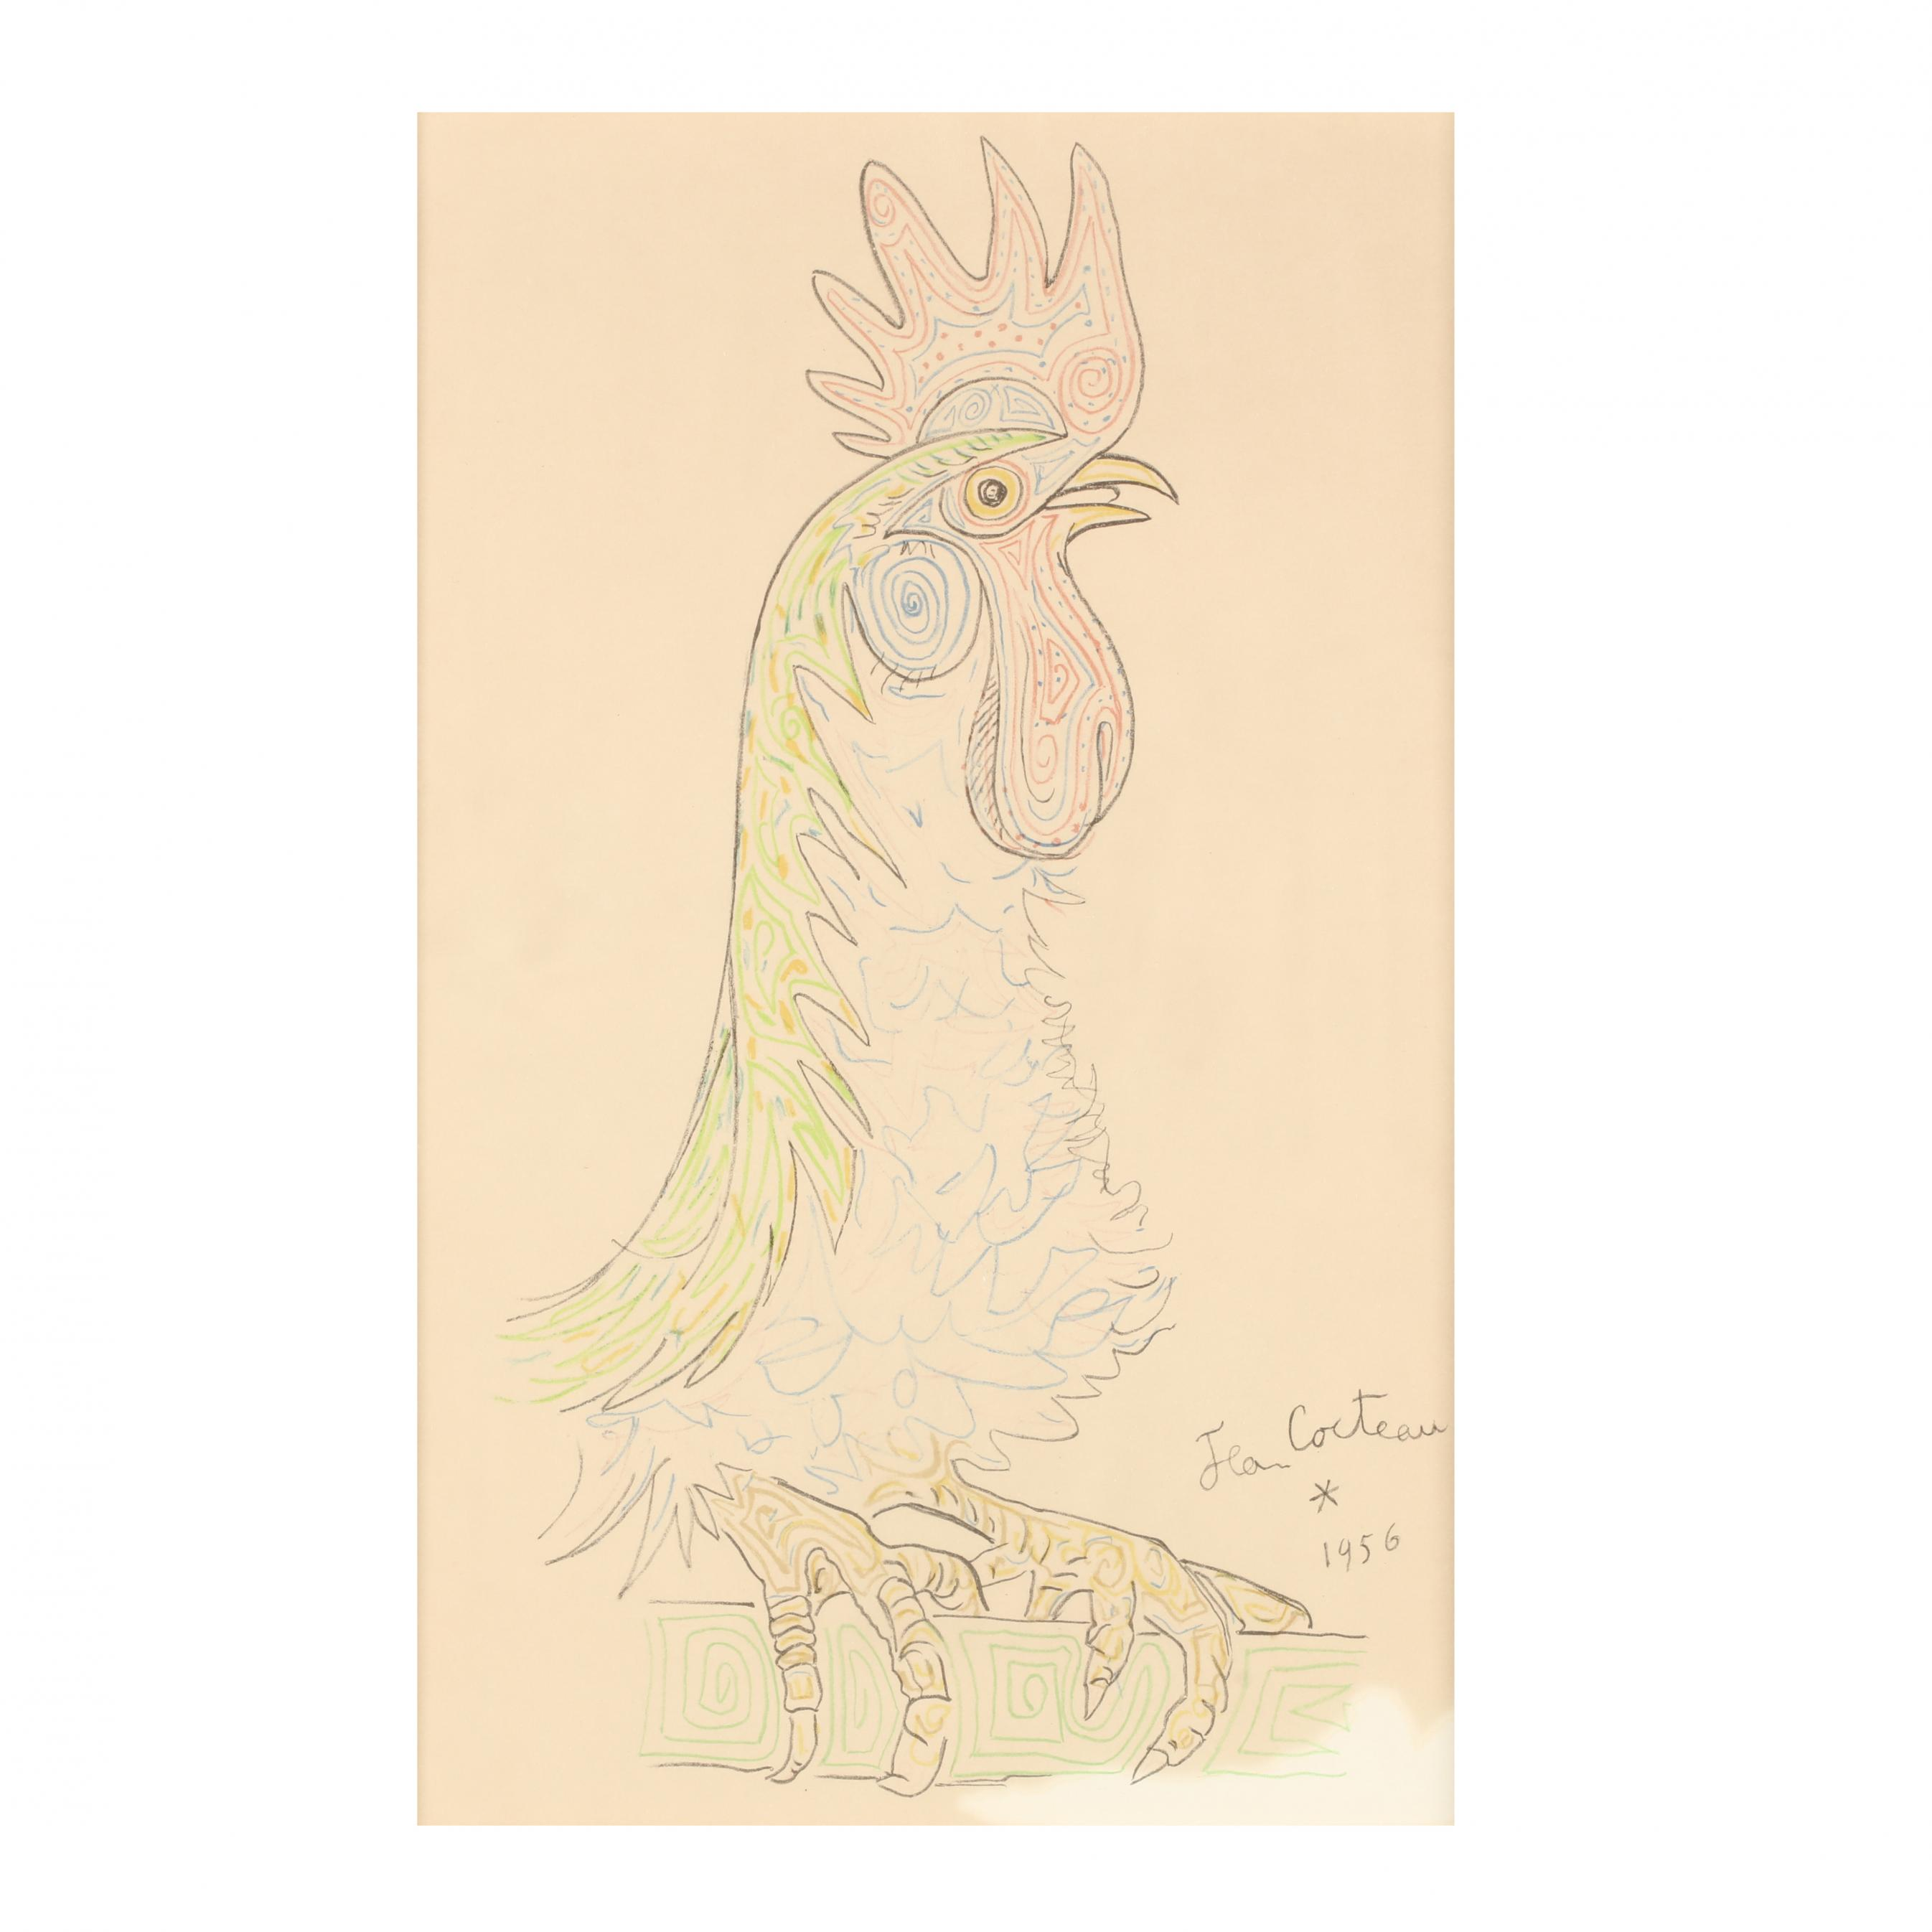 jean-cocteau-french-1889-1963-i-le-coq-the-rooster-i